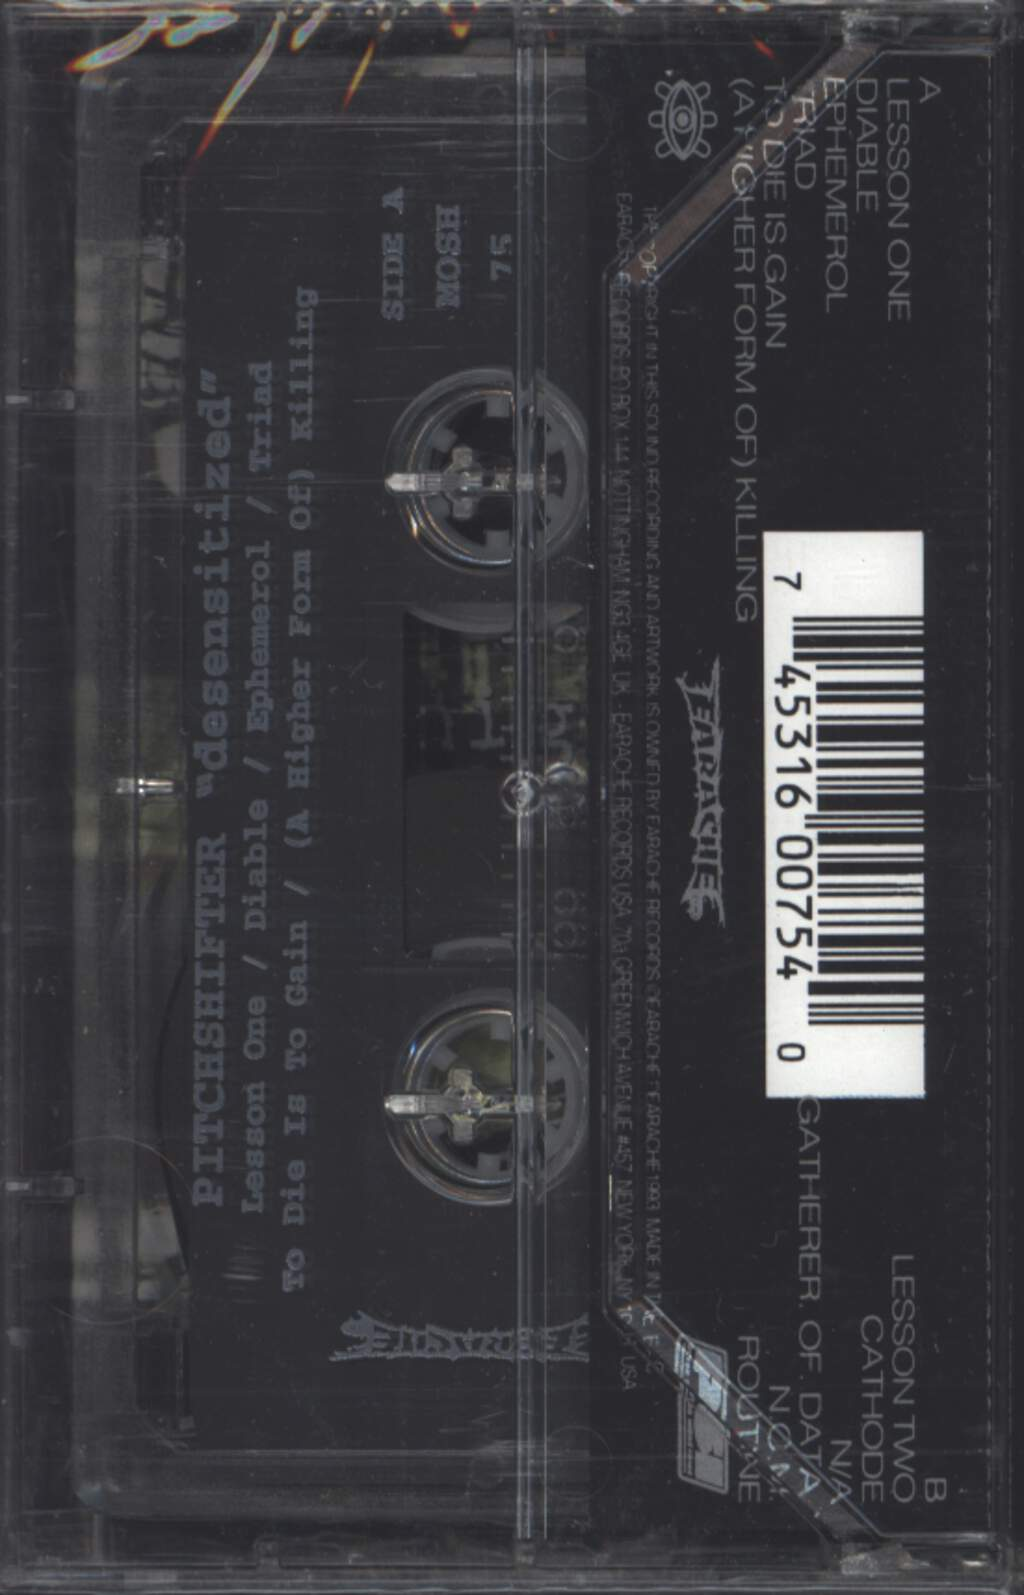 Pitchshifter: Desensitized, Tape